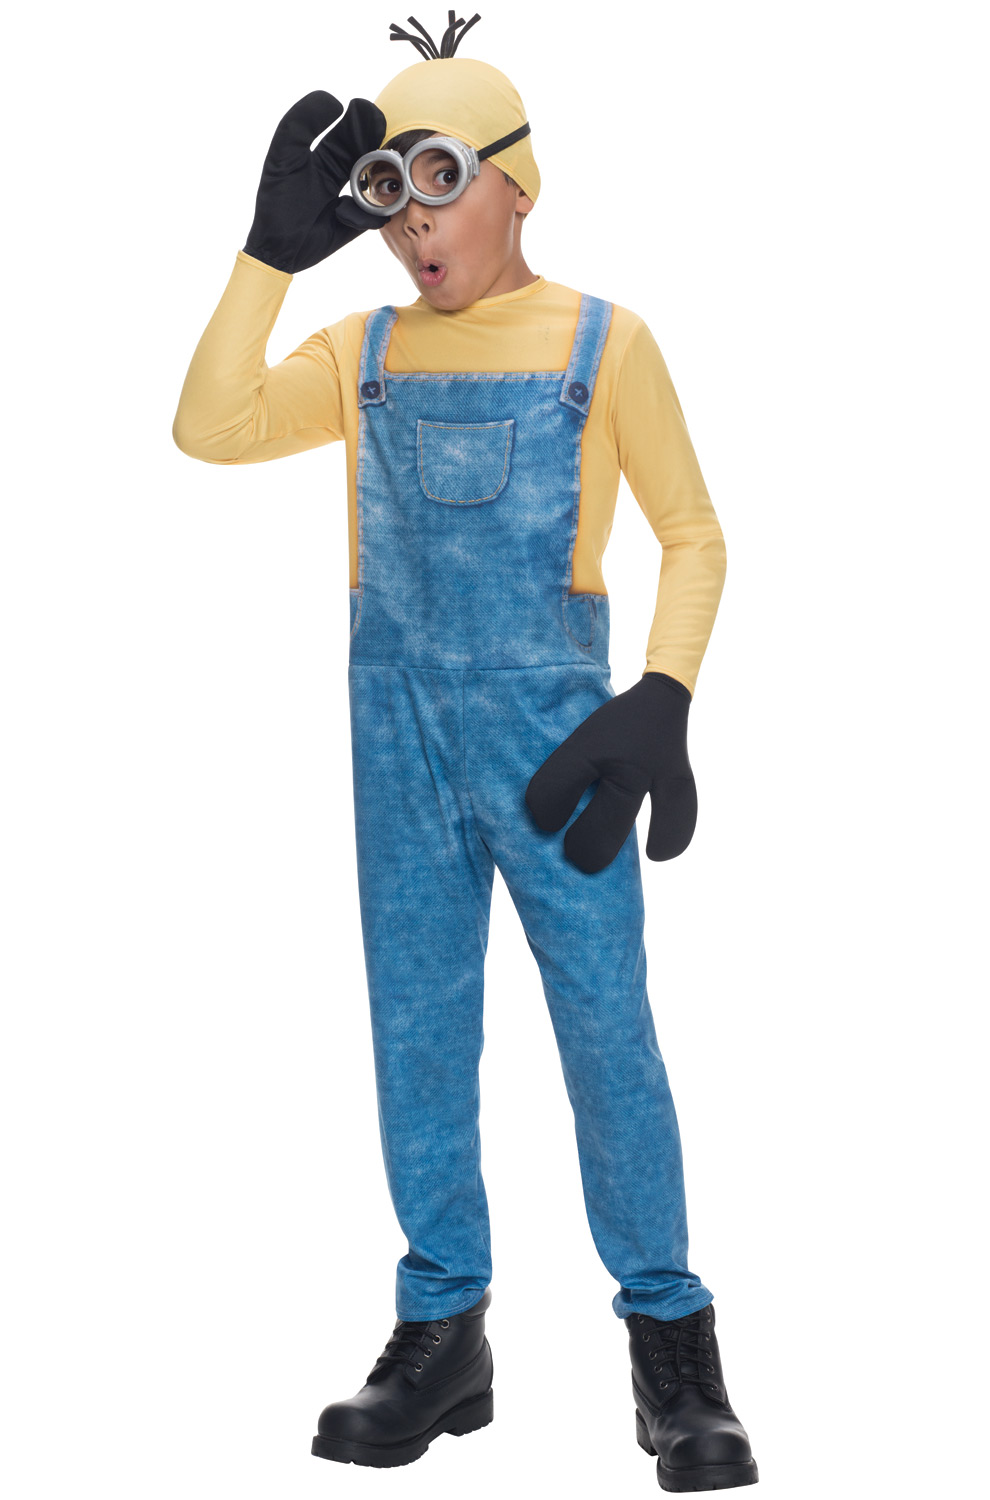 Minions Movie Minion Kevin Child Halloween Costume by Generic